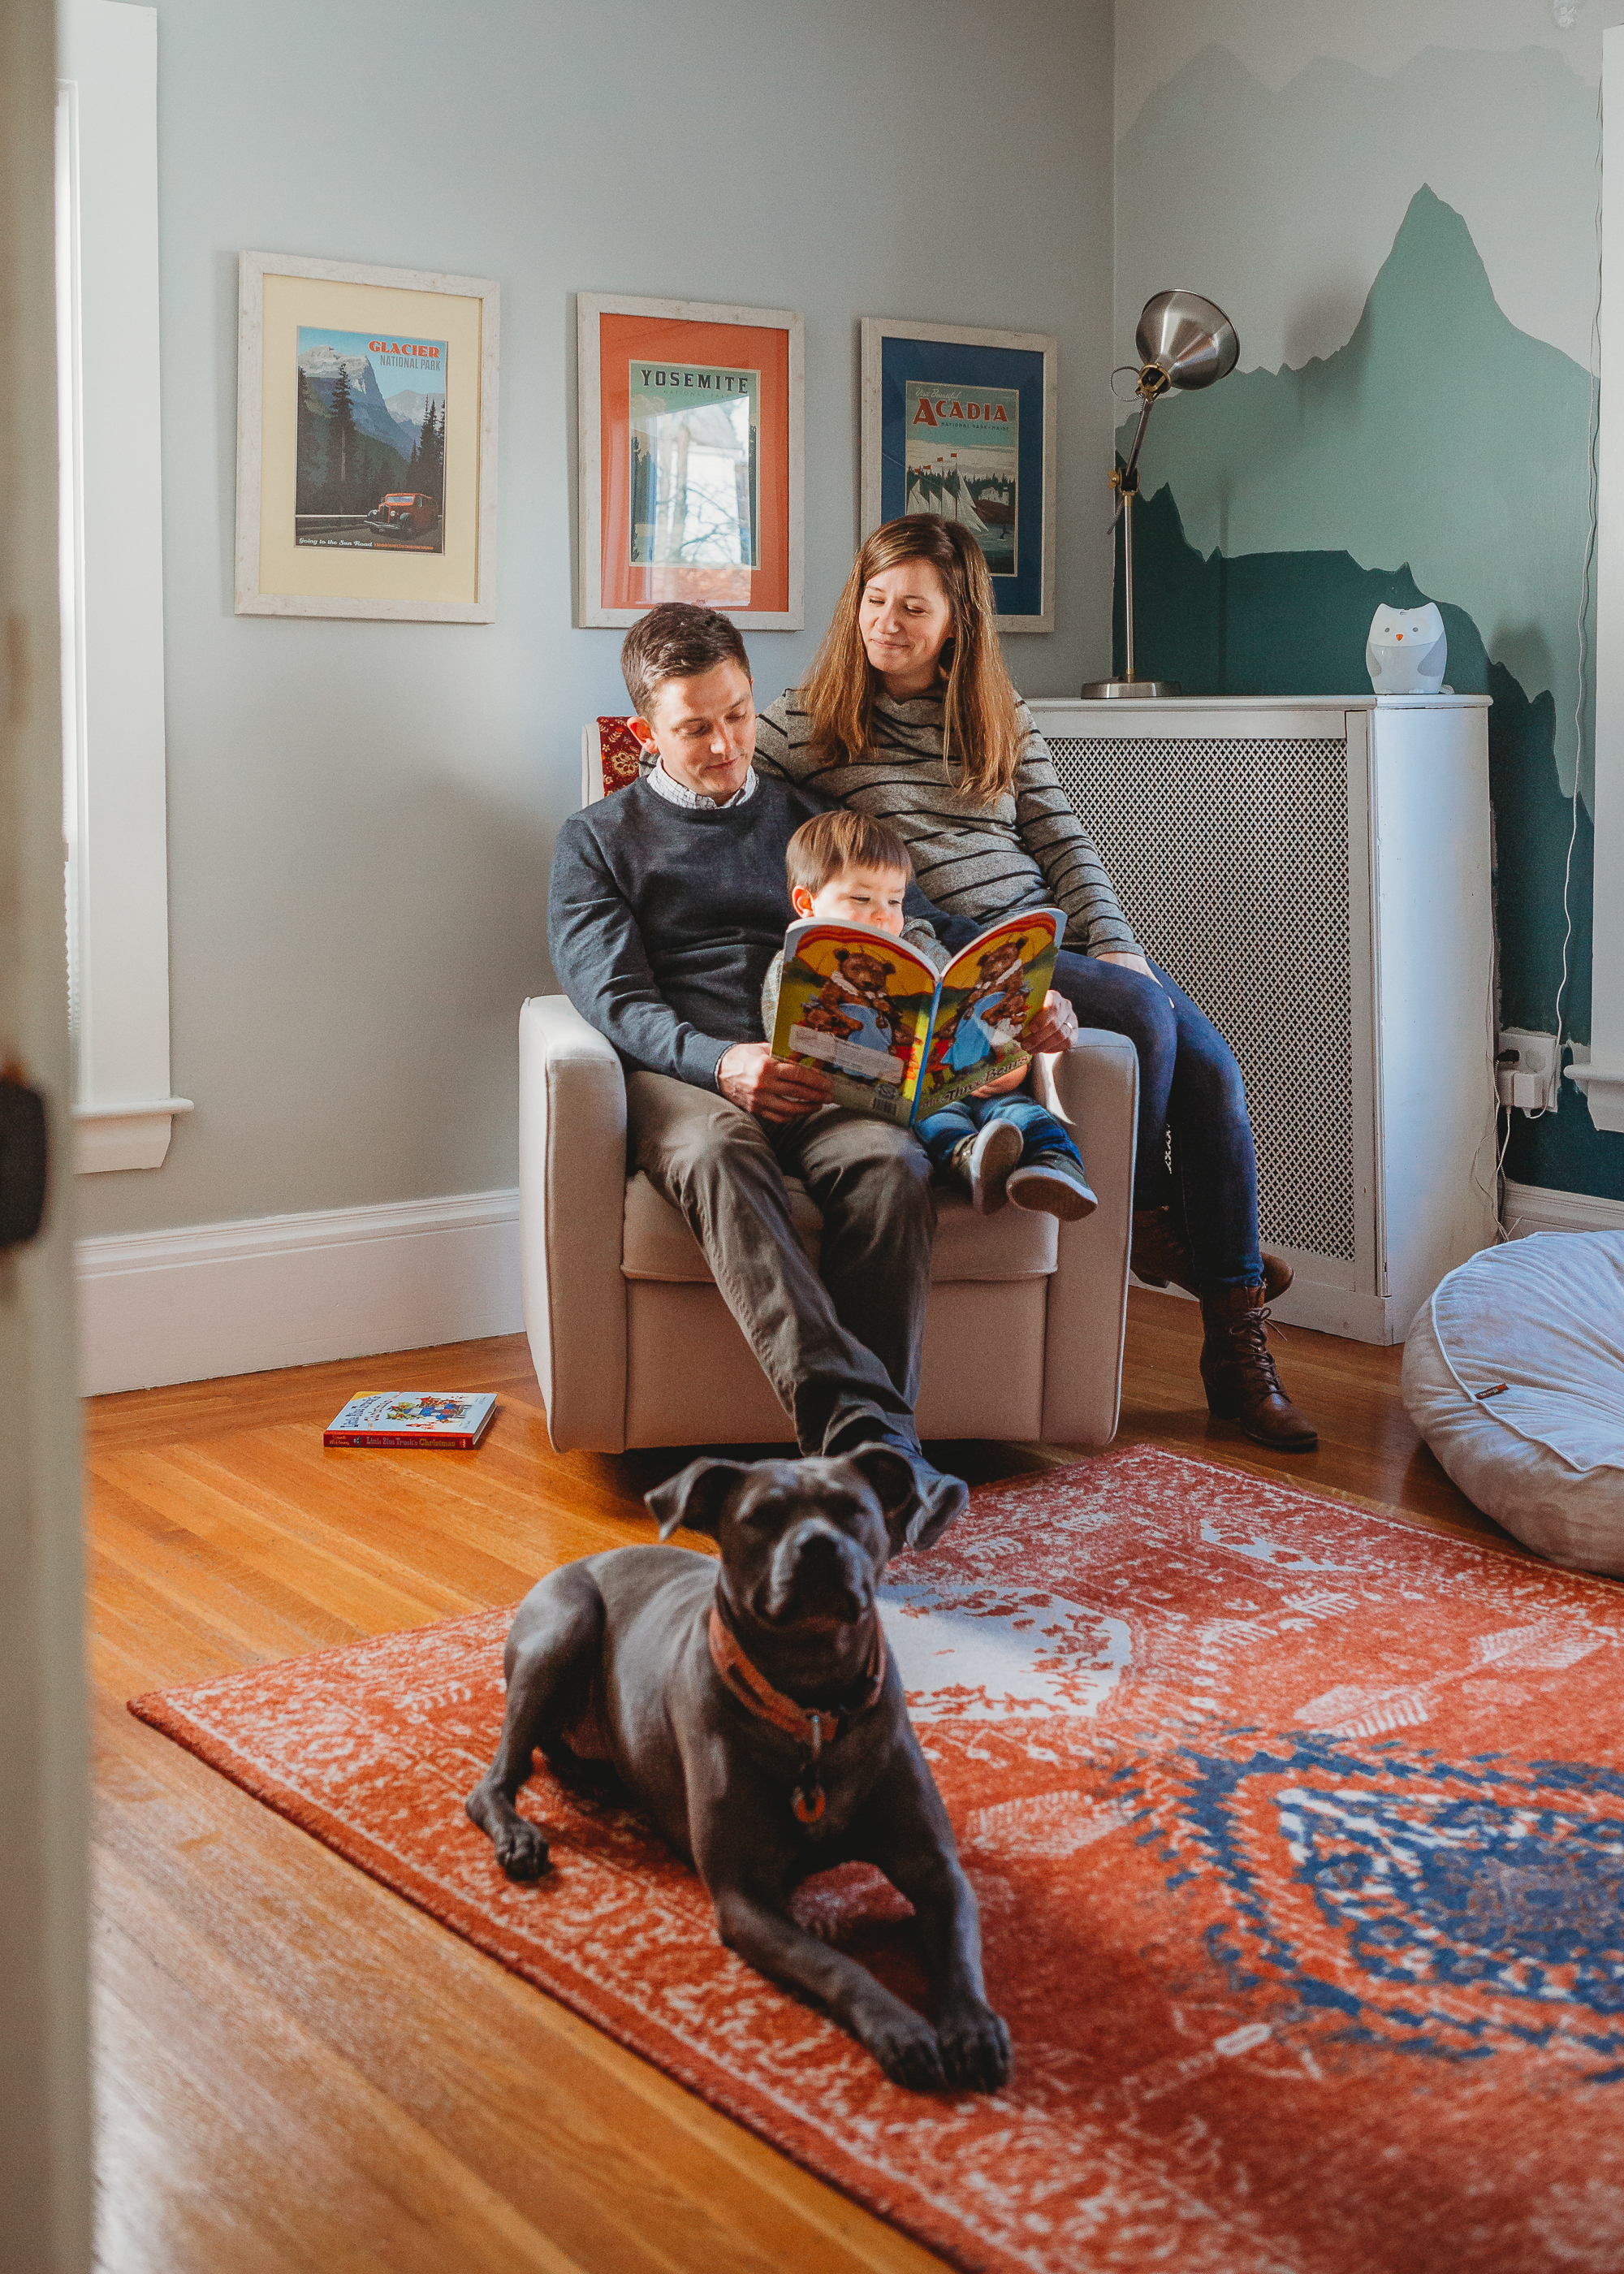 Mom, dad, toddler boy, and dog reading books in the nursery. In-home family photography in Melrose. Boston family photographer Joy LeDuc.